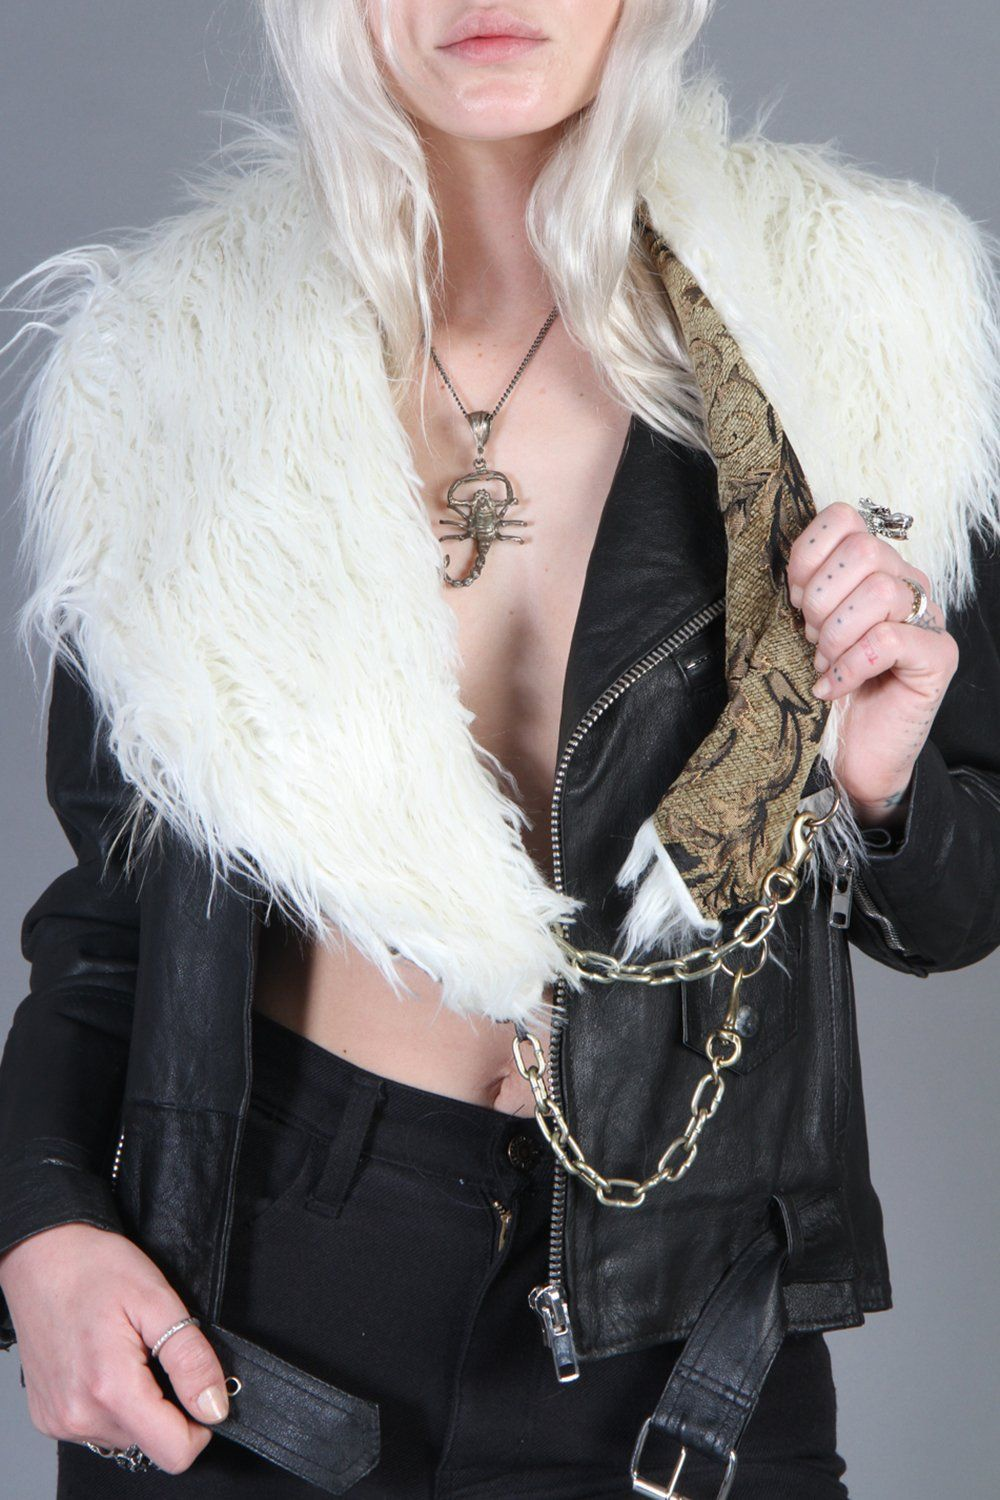 White Faux Fur Chained-Up Stole by Hell Bent Leather (SOLD OUT)